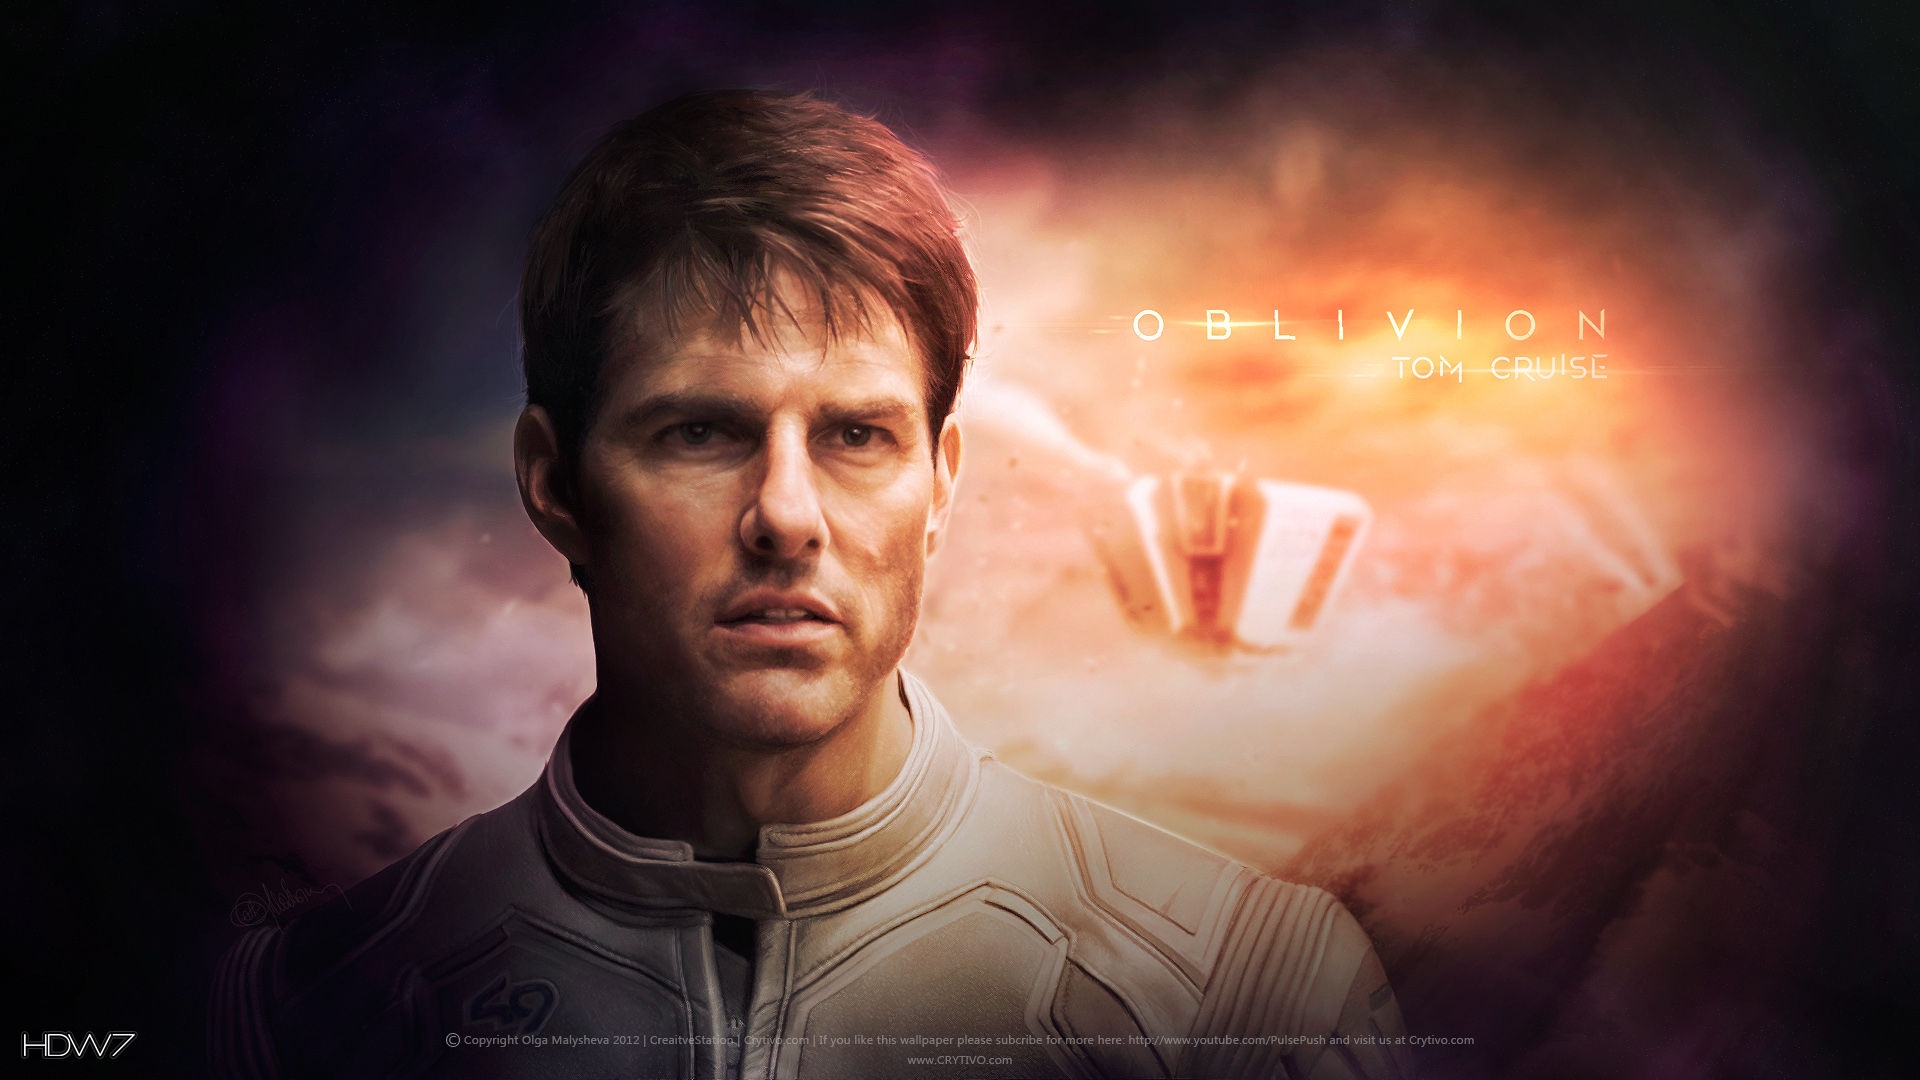 tom cruise oblivion movie background | hd wallpaper gallery #383